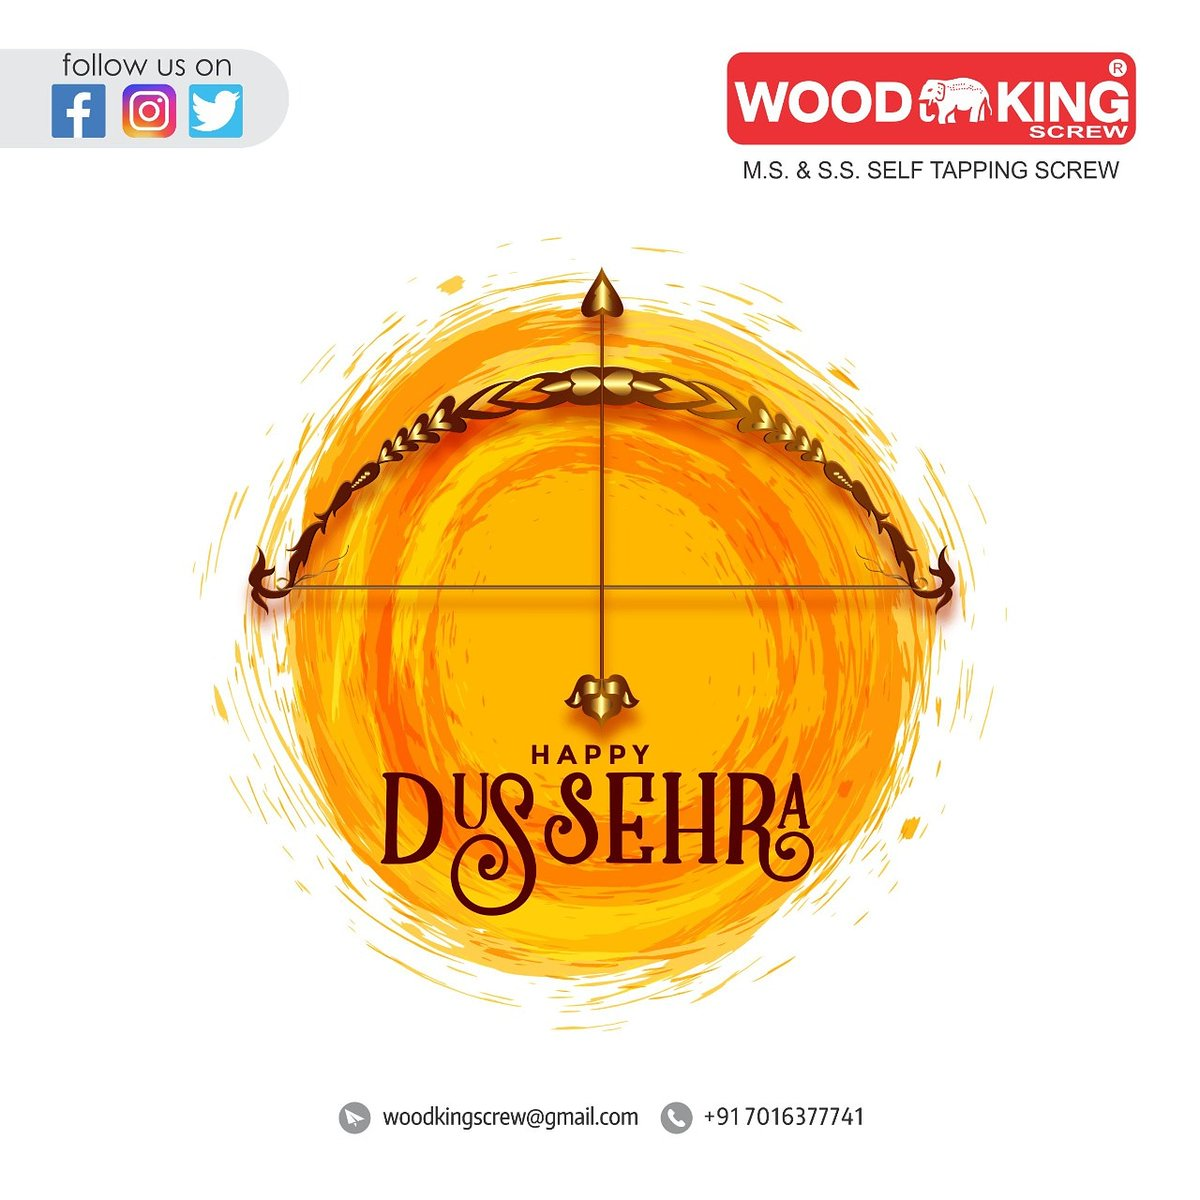 Today we Pray that Lord Rama shower the happiness and success on you. . . . #dussehra #navratri #festival #dussehraspecial #happydussehra #celebration #ravan #postivity #negativity #dussehragreetings #evil #pooja #dusshera #dussehravibes #victory #woodkingscrew #india #screw https://t.co/hchmcYXQGc